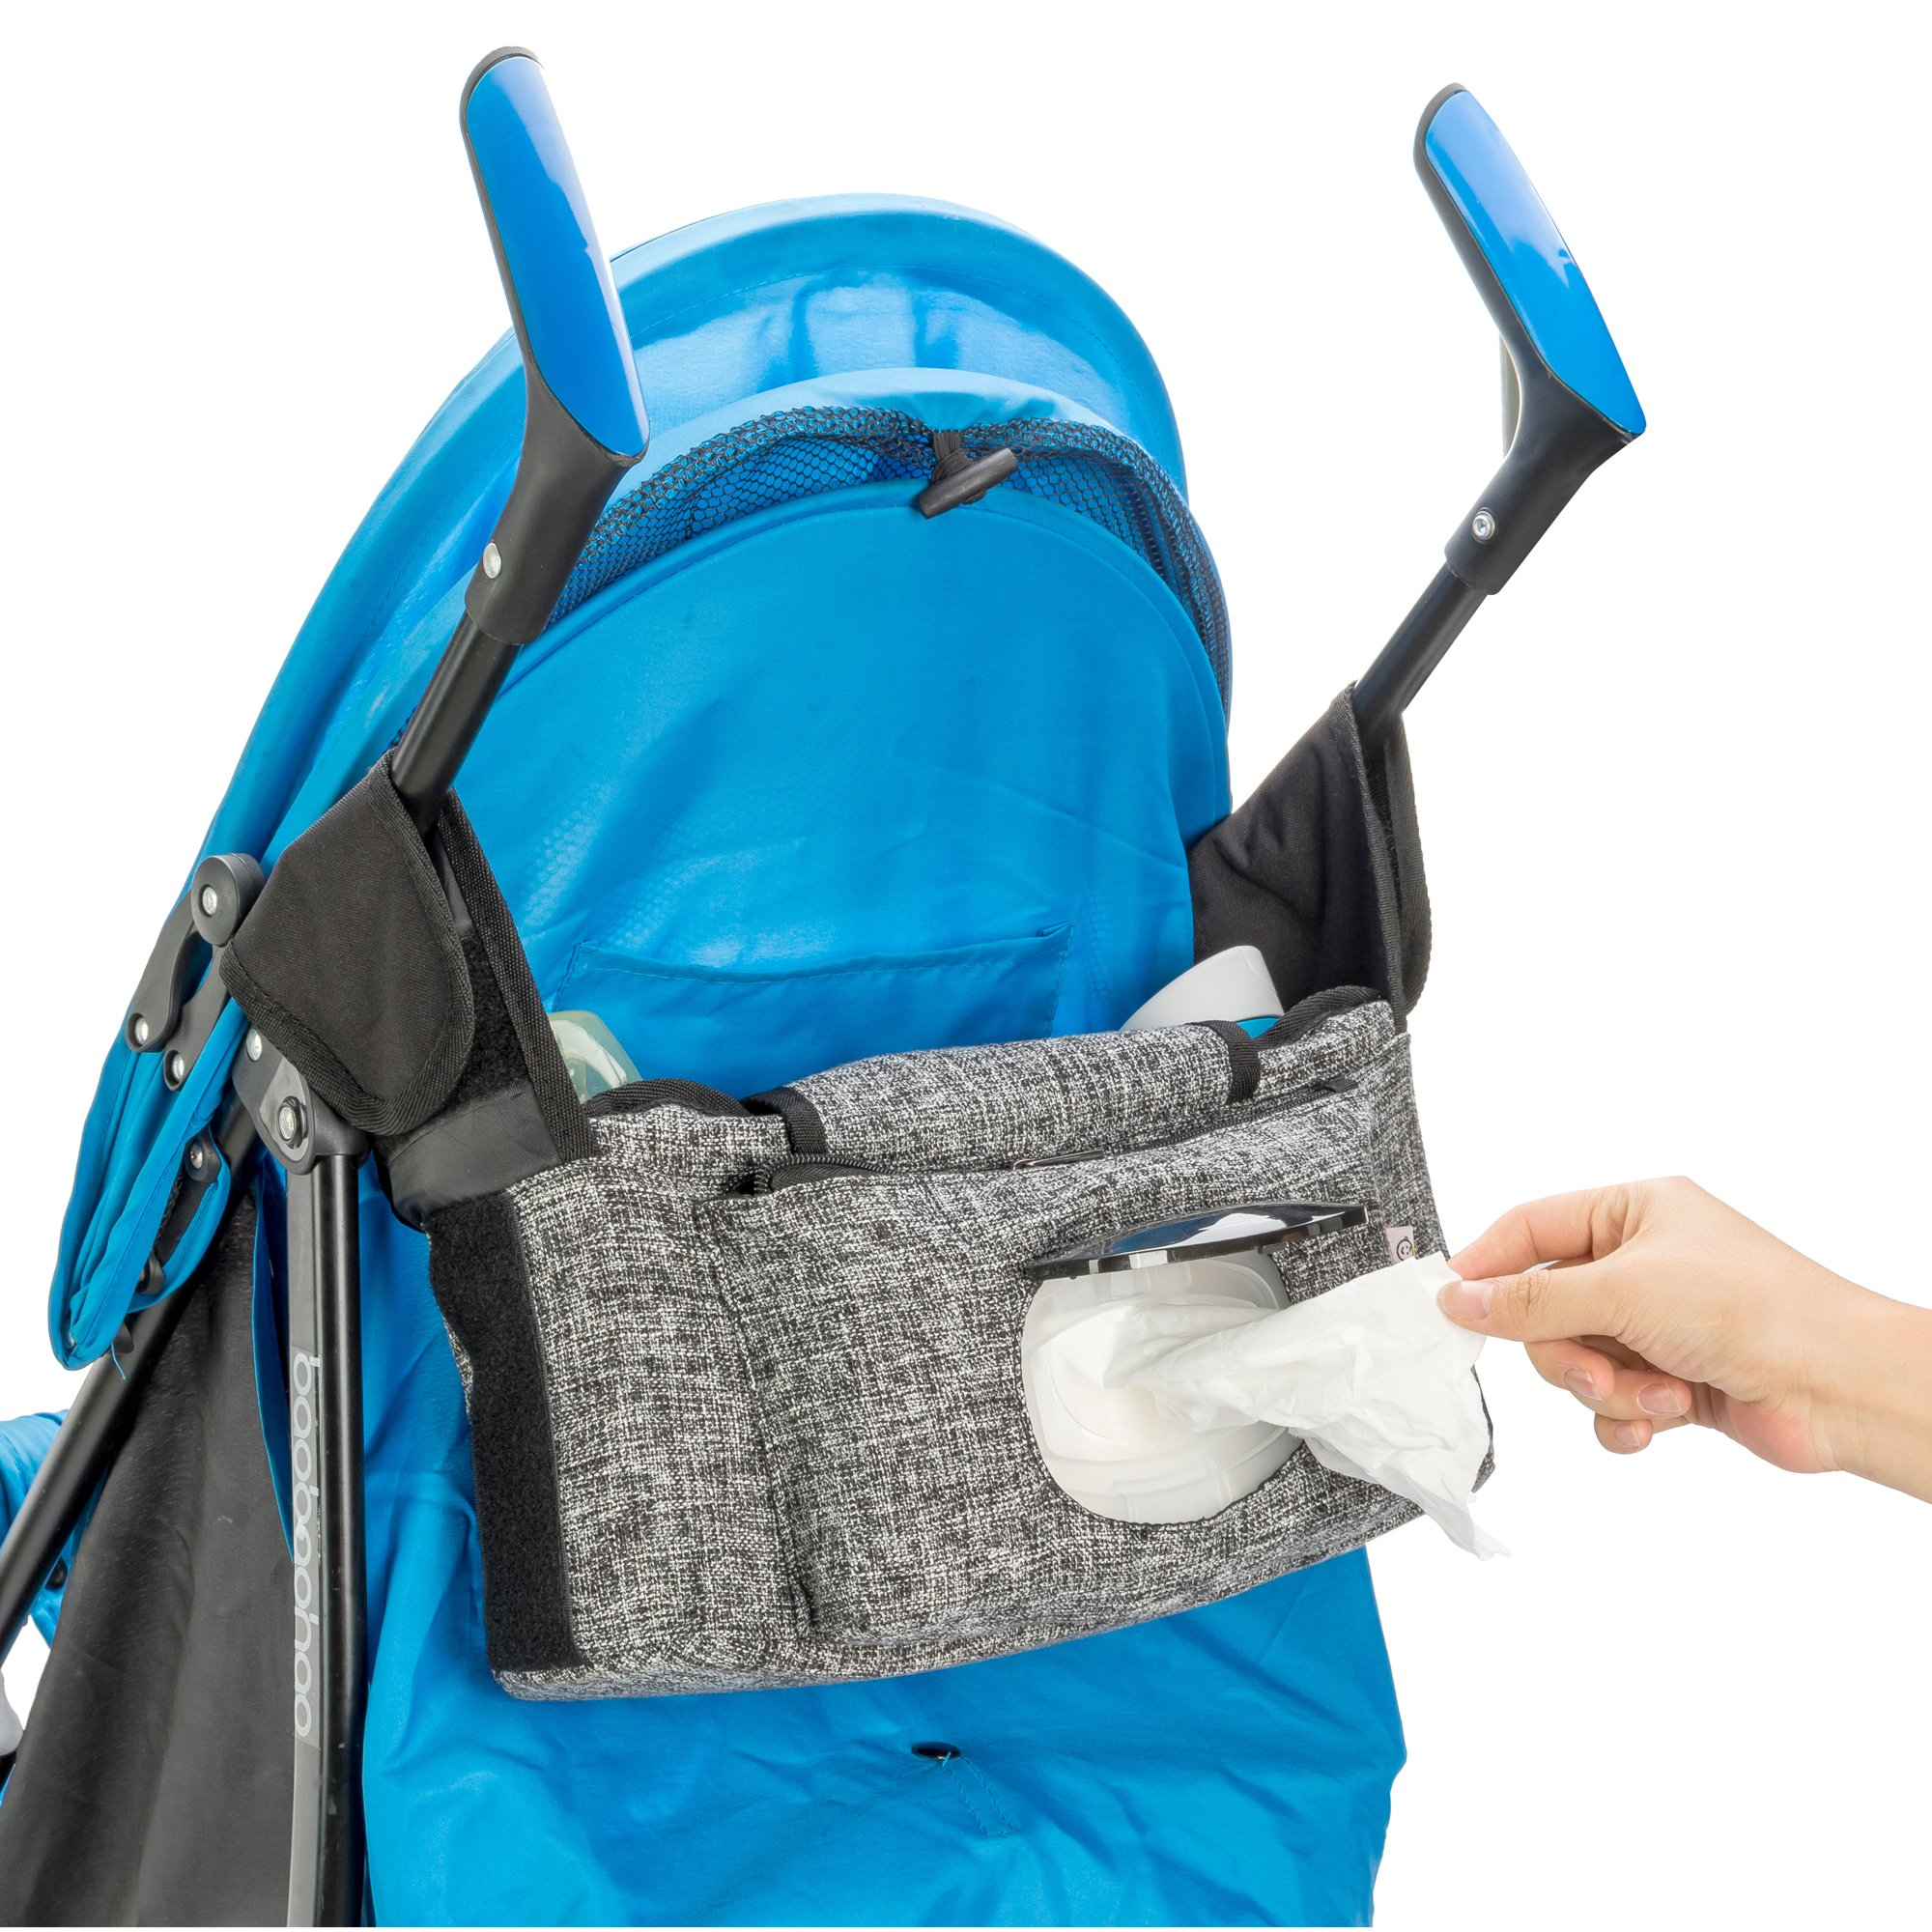 Agibaby Stroller Organizer, Insulated Deep Cup Holders, Instant Access Wipe Pocket, Universal Strap Fit, Large Storage Space by Agibaby (Image #5)